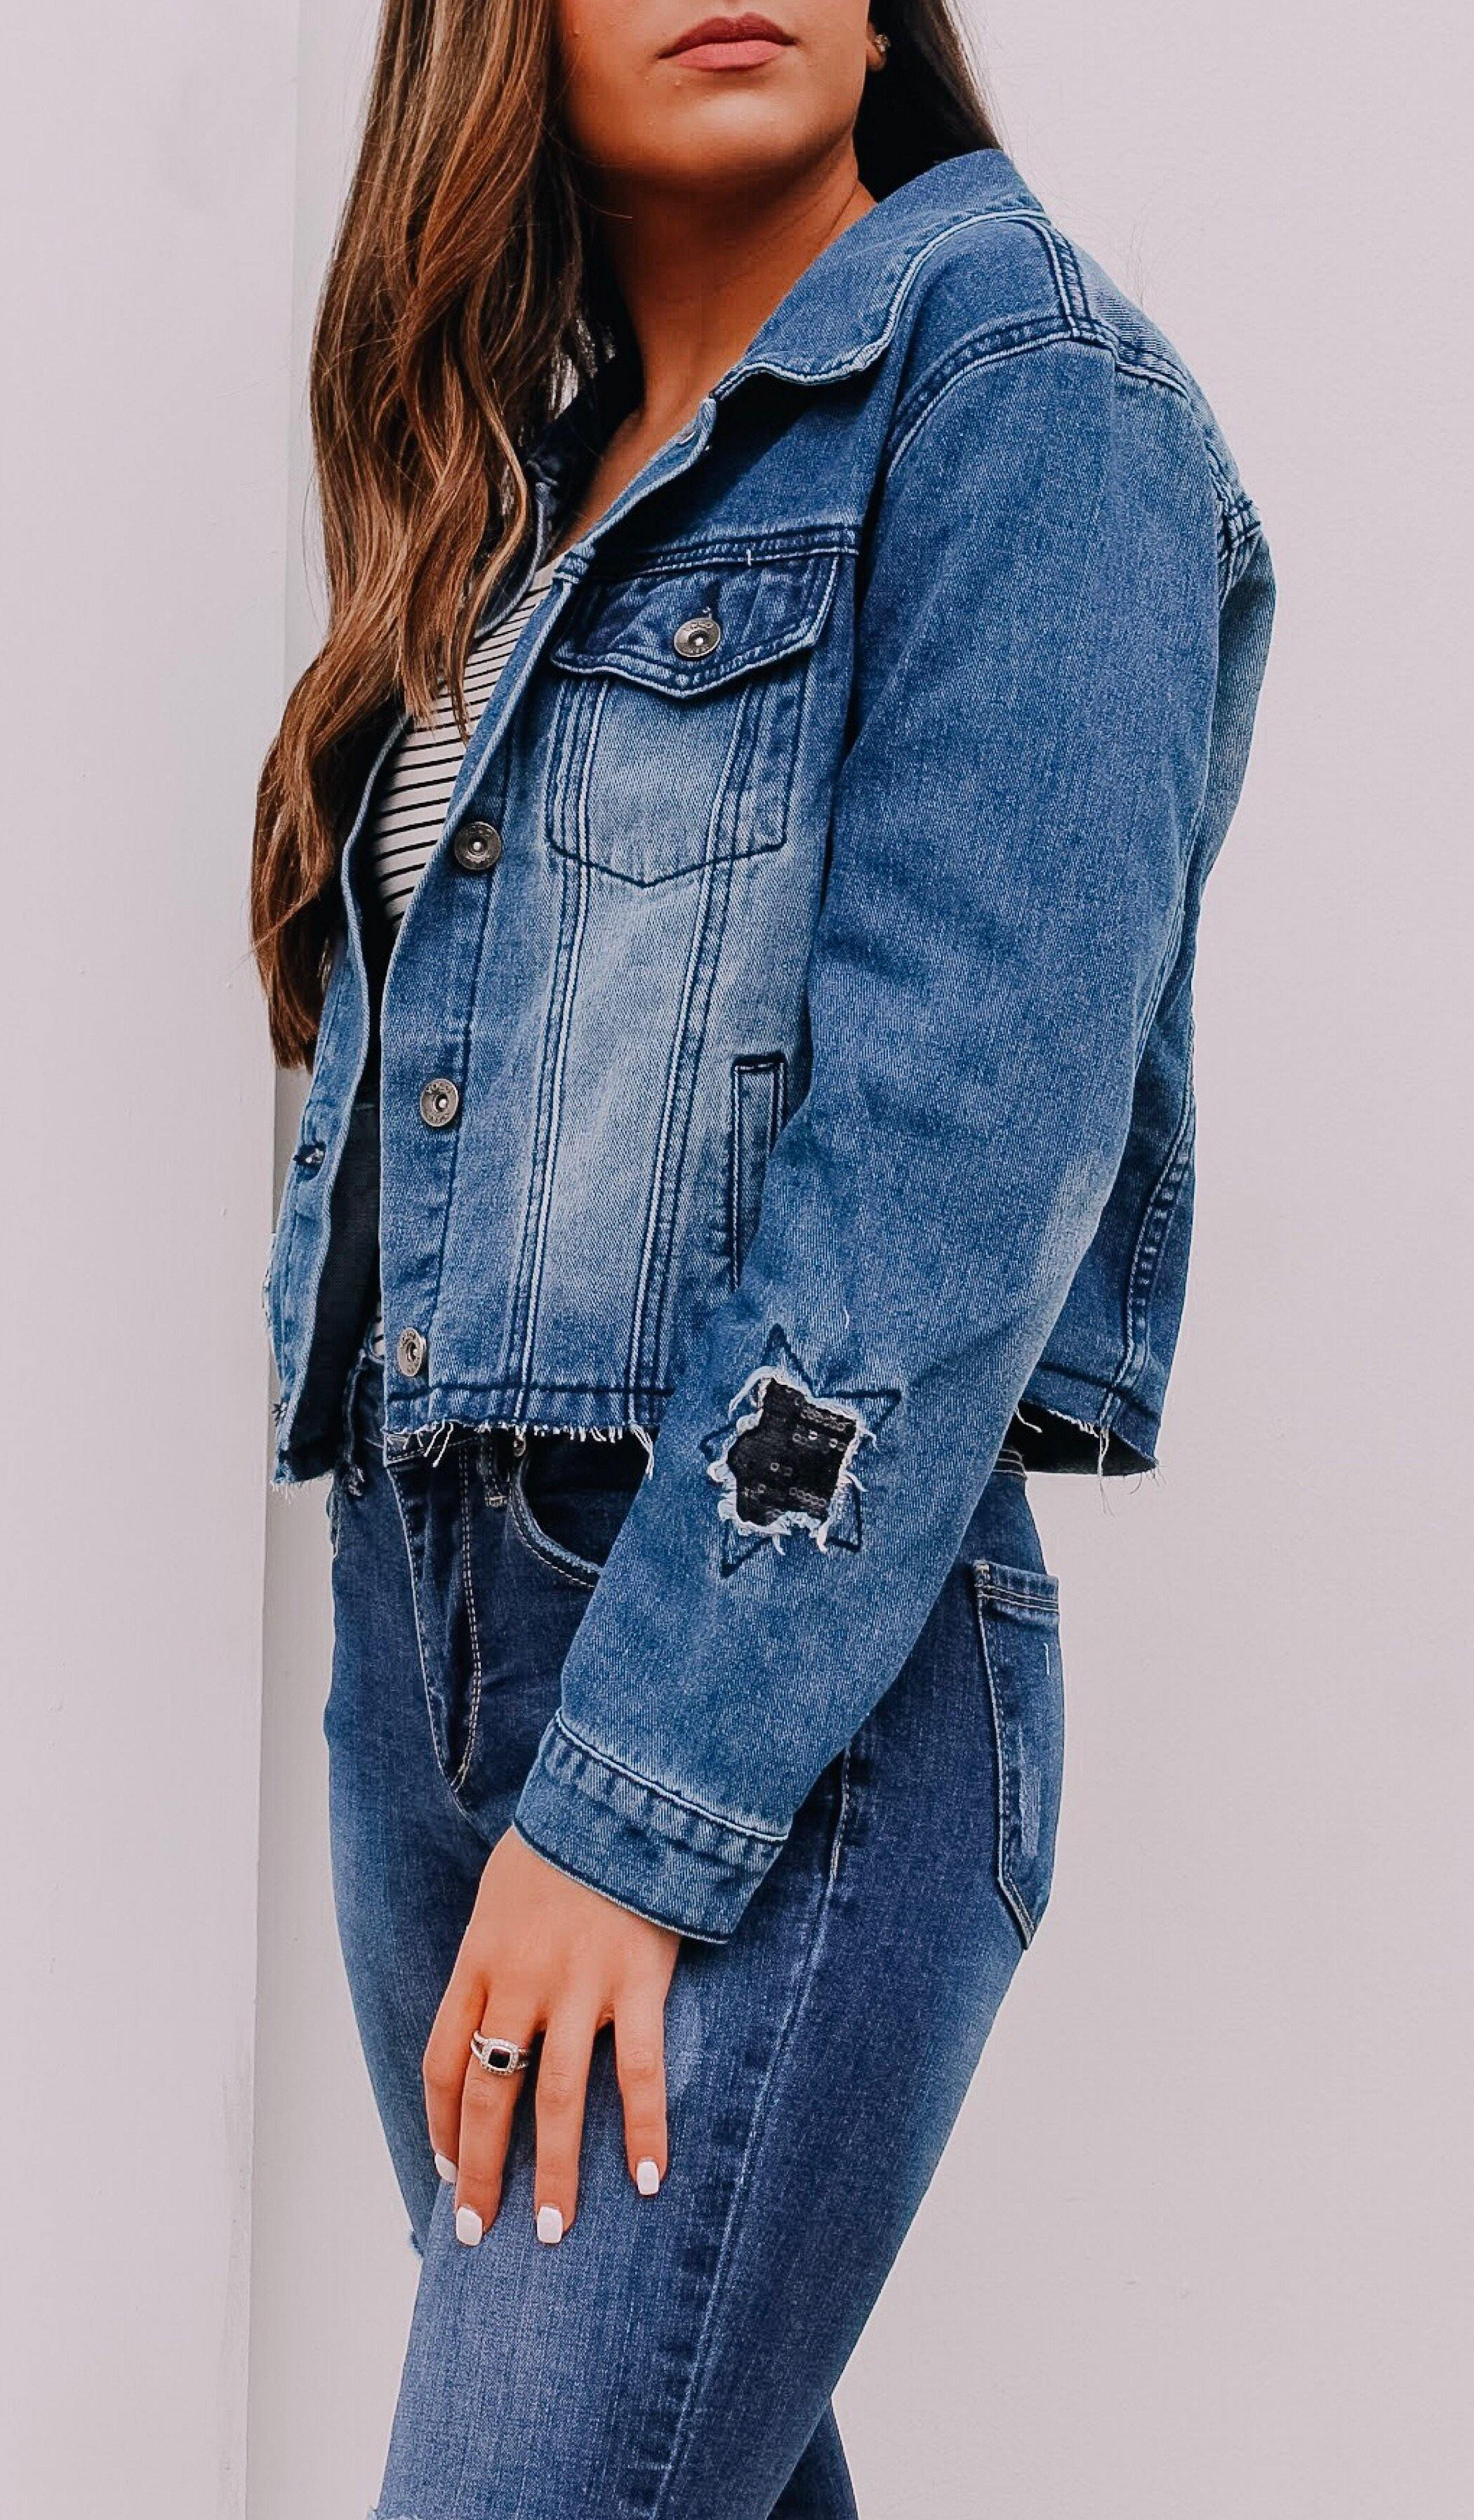 STARRY NIGHT DENIM JACKET - elbie boutique, LLC